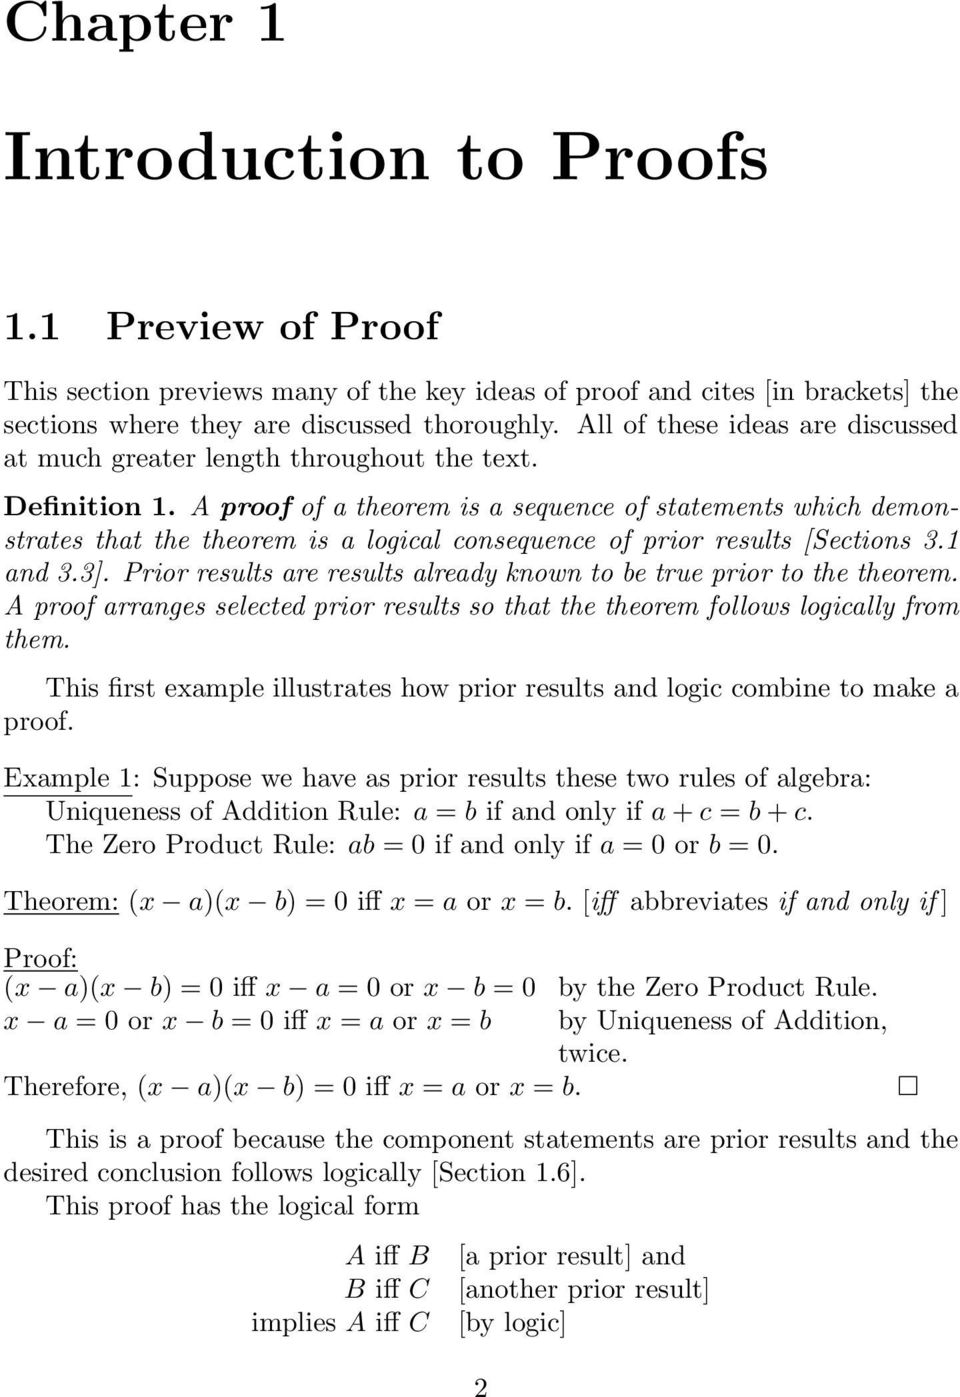 A proof of a theorem is a sequence of statements which demonstrates that the theorem is a logical consequence of prior results [Sections 3.1 and 3.3].